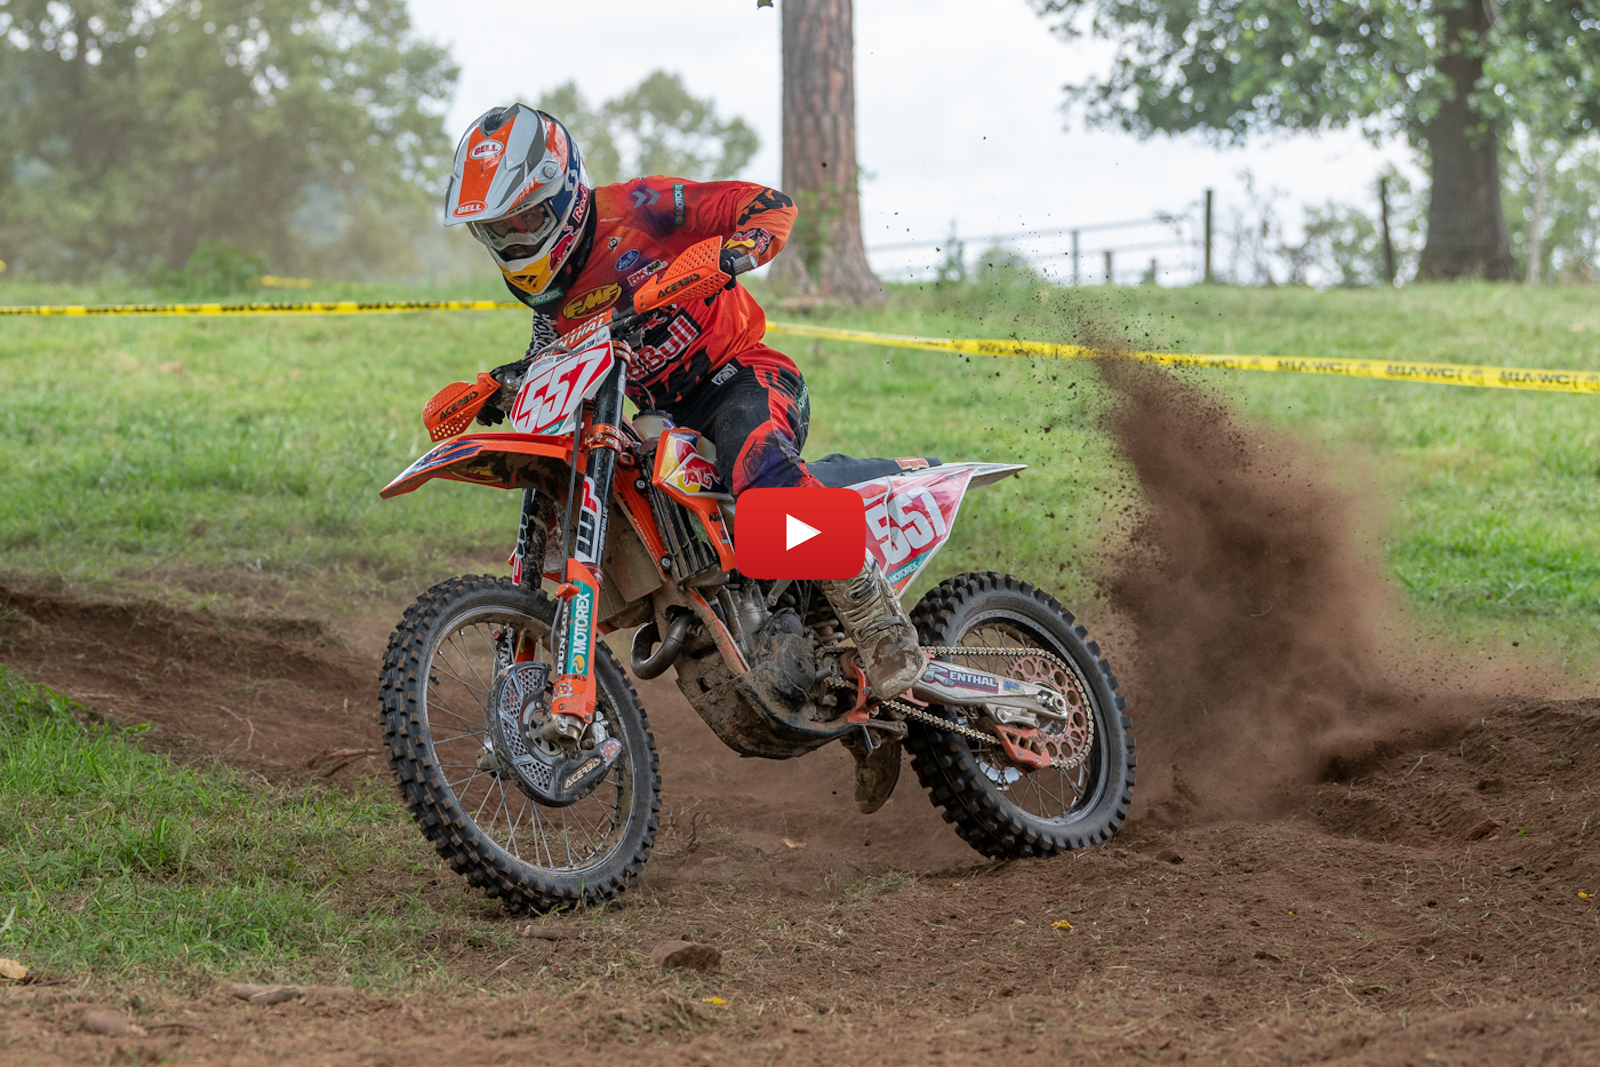 Events Highlights: Rockcrusher Full Gas Sprint Enduro – Kailub Russell takes the title